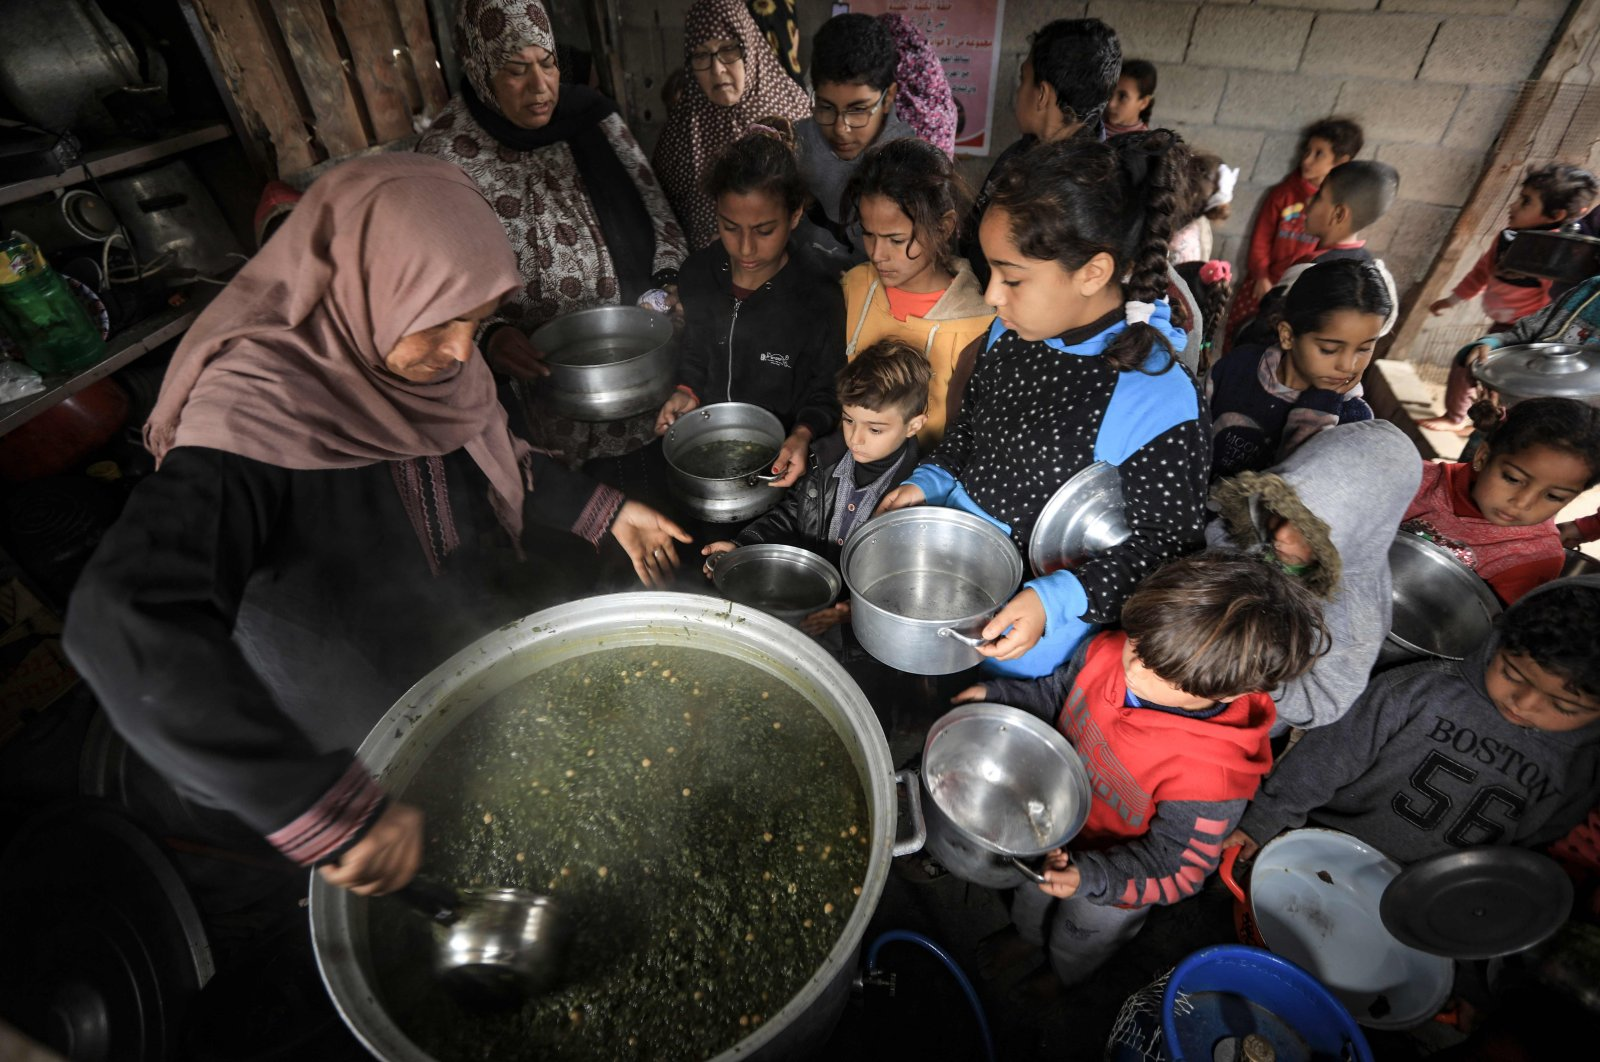 A Palestinian volunteer cook distributes food prepared with ingredients obtained from donors, to help needy families in an impoverished neighborhood in besieged Gaza City, Palestine, Jan. 28, 2021. (AFP Photo)